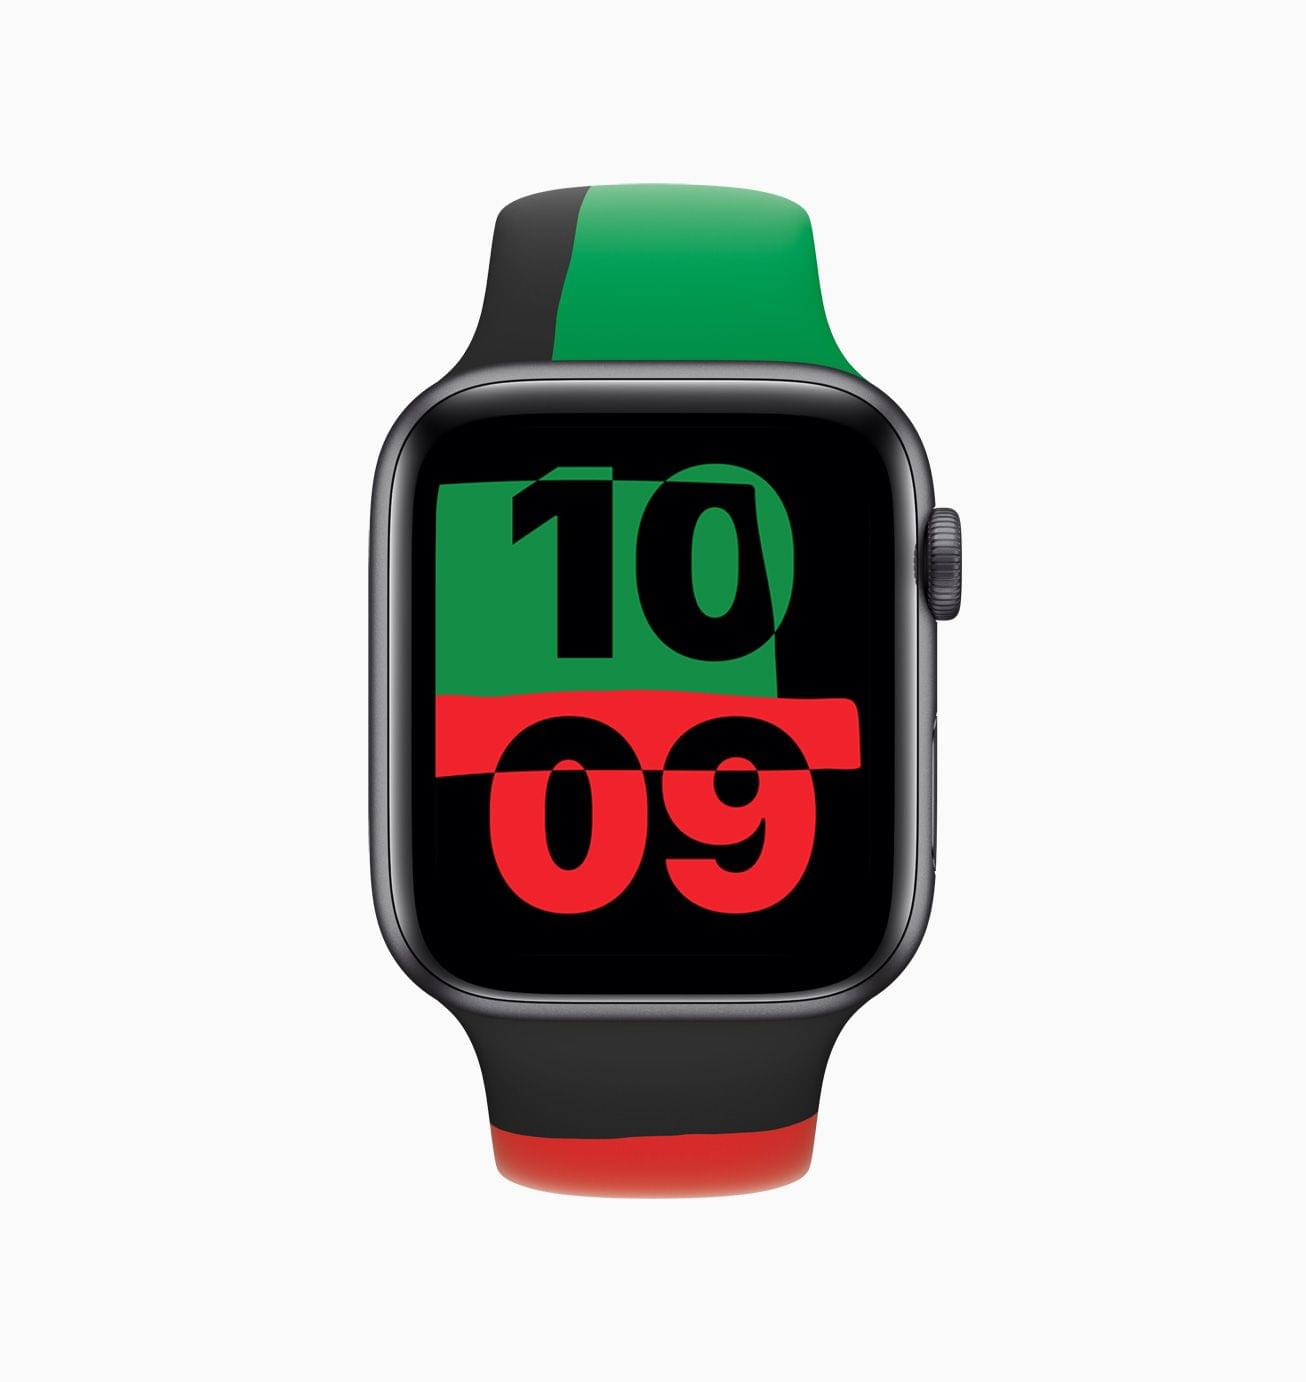 The Apple Watch Unity watch face is part of watchOS 7.3.